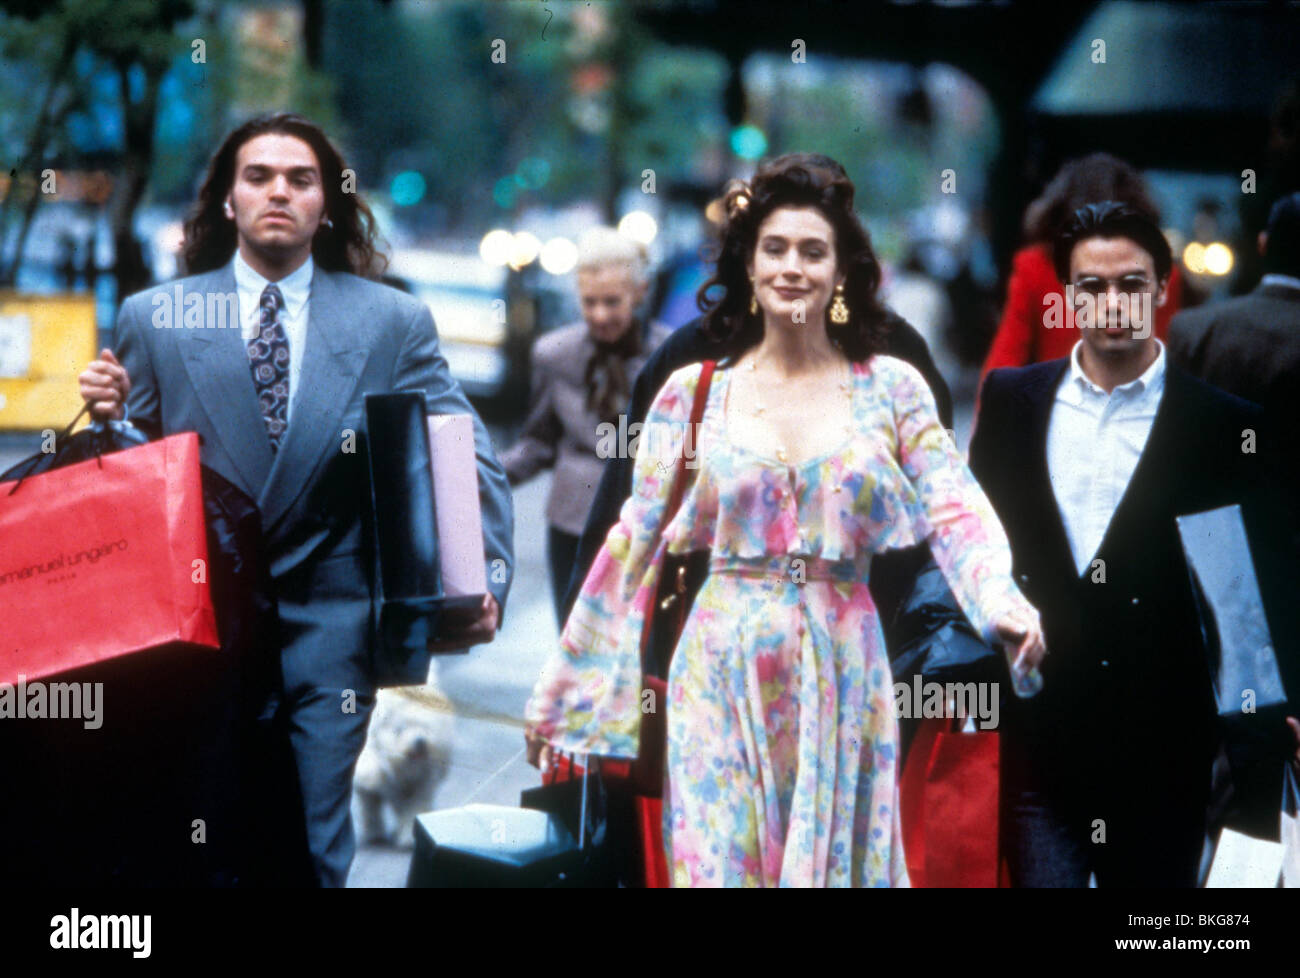 DR JEKYLL AND MS HYDE (1995) SEAN YOUNG JKHY 026 D Stock ...